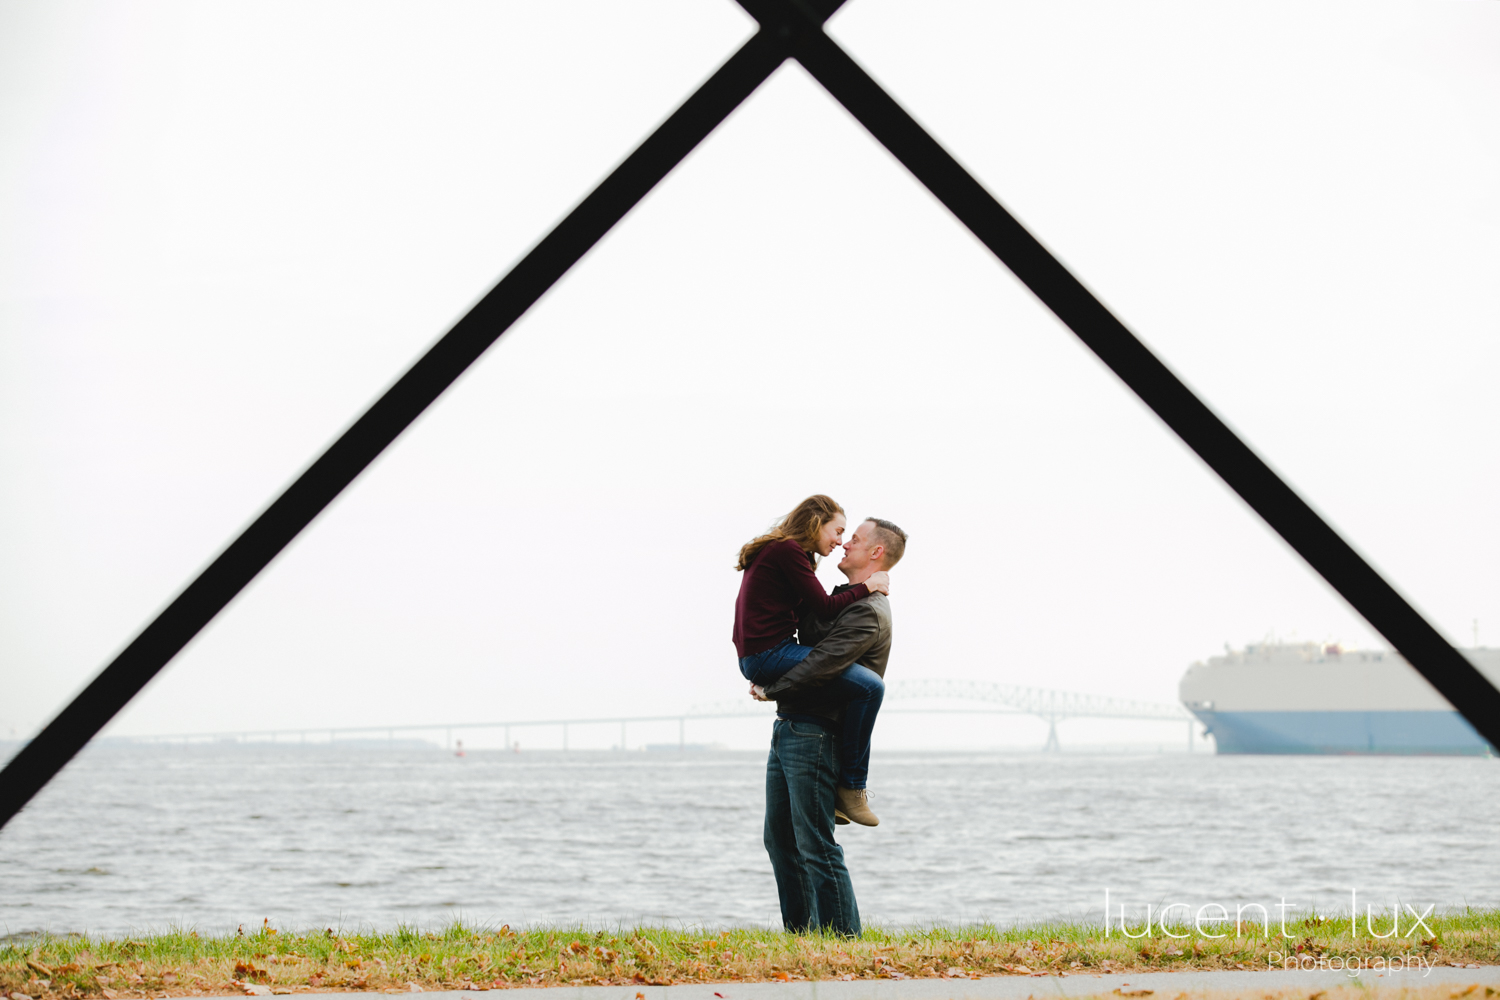 Fort-McHenry-Engagement-Photography-Maryland-Photographer-Baltimore-126.jpg